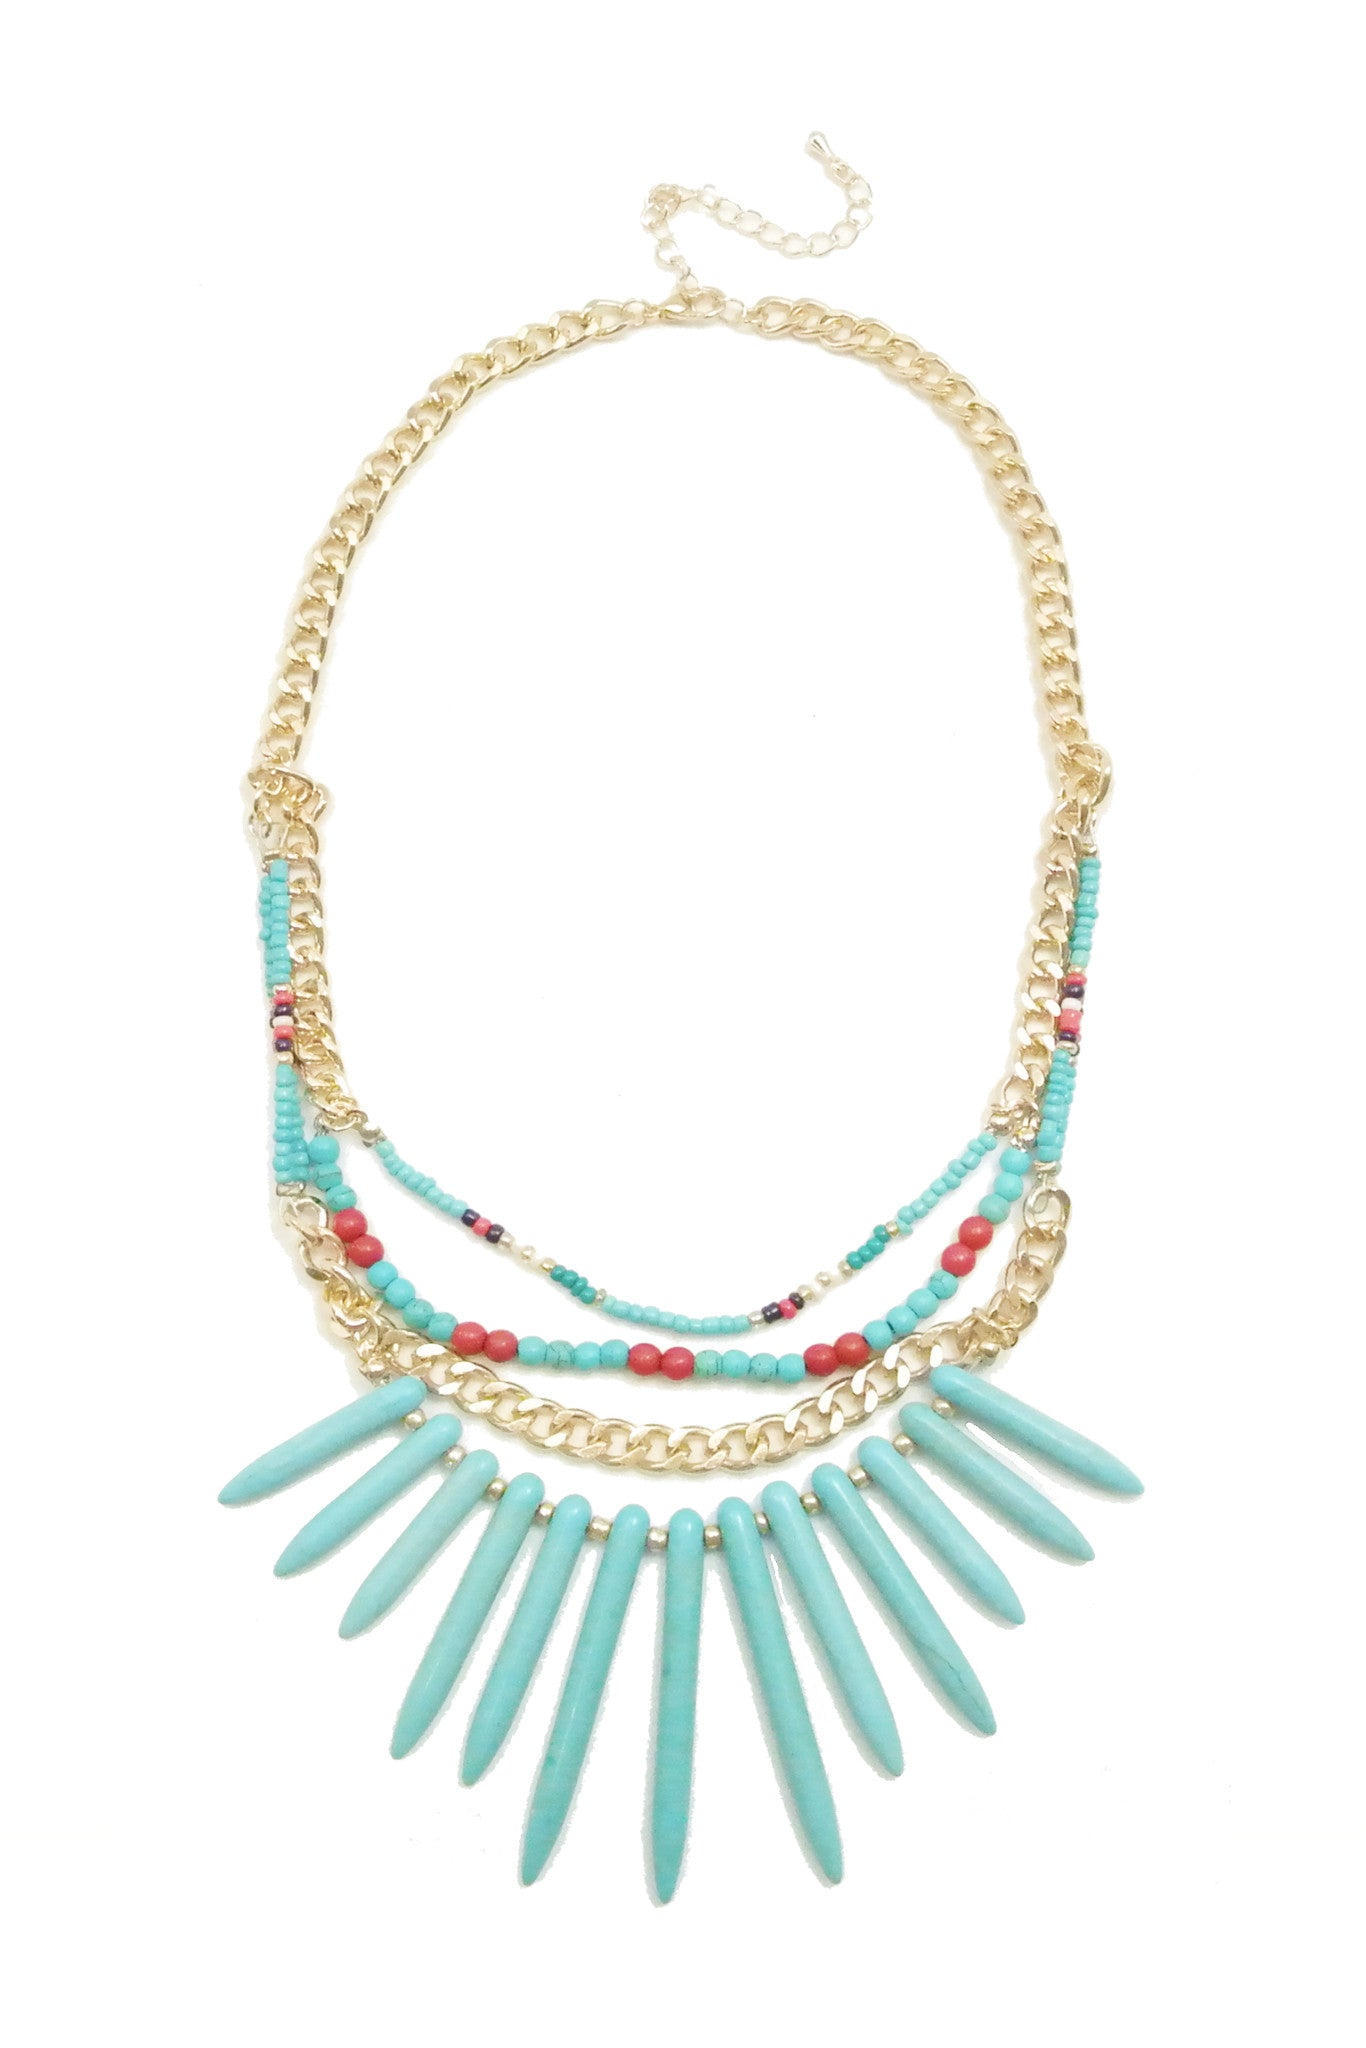 Tribal Spears Necklace - Turquoise